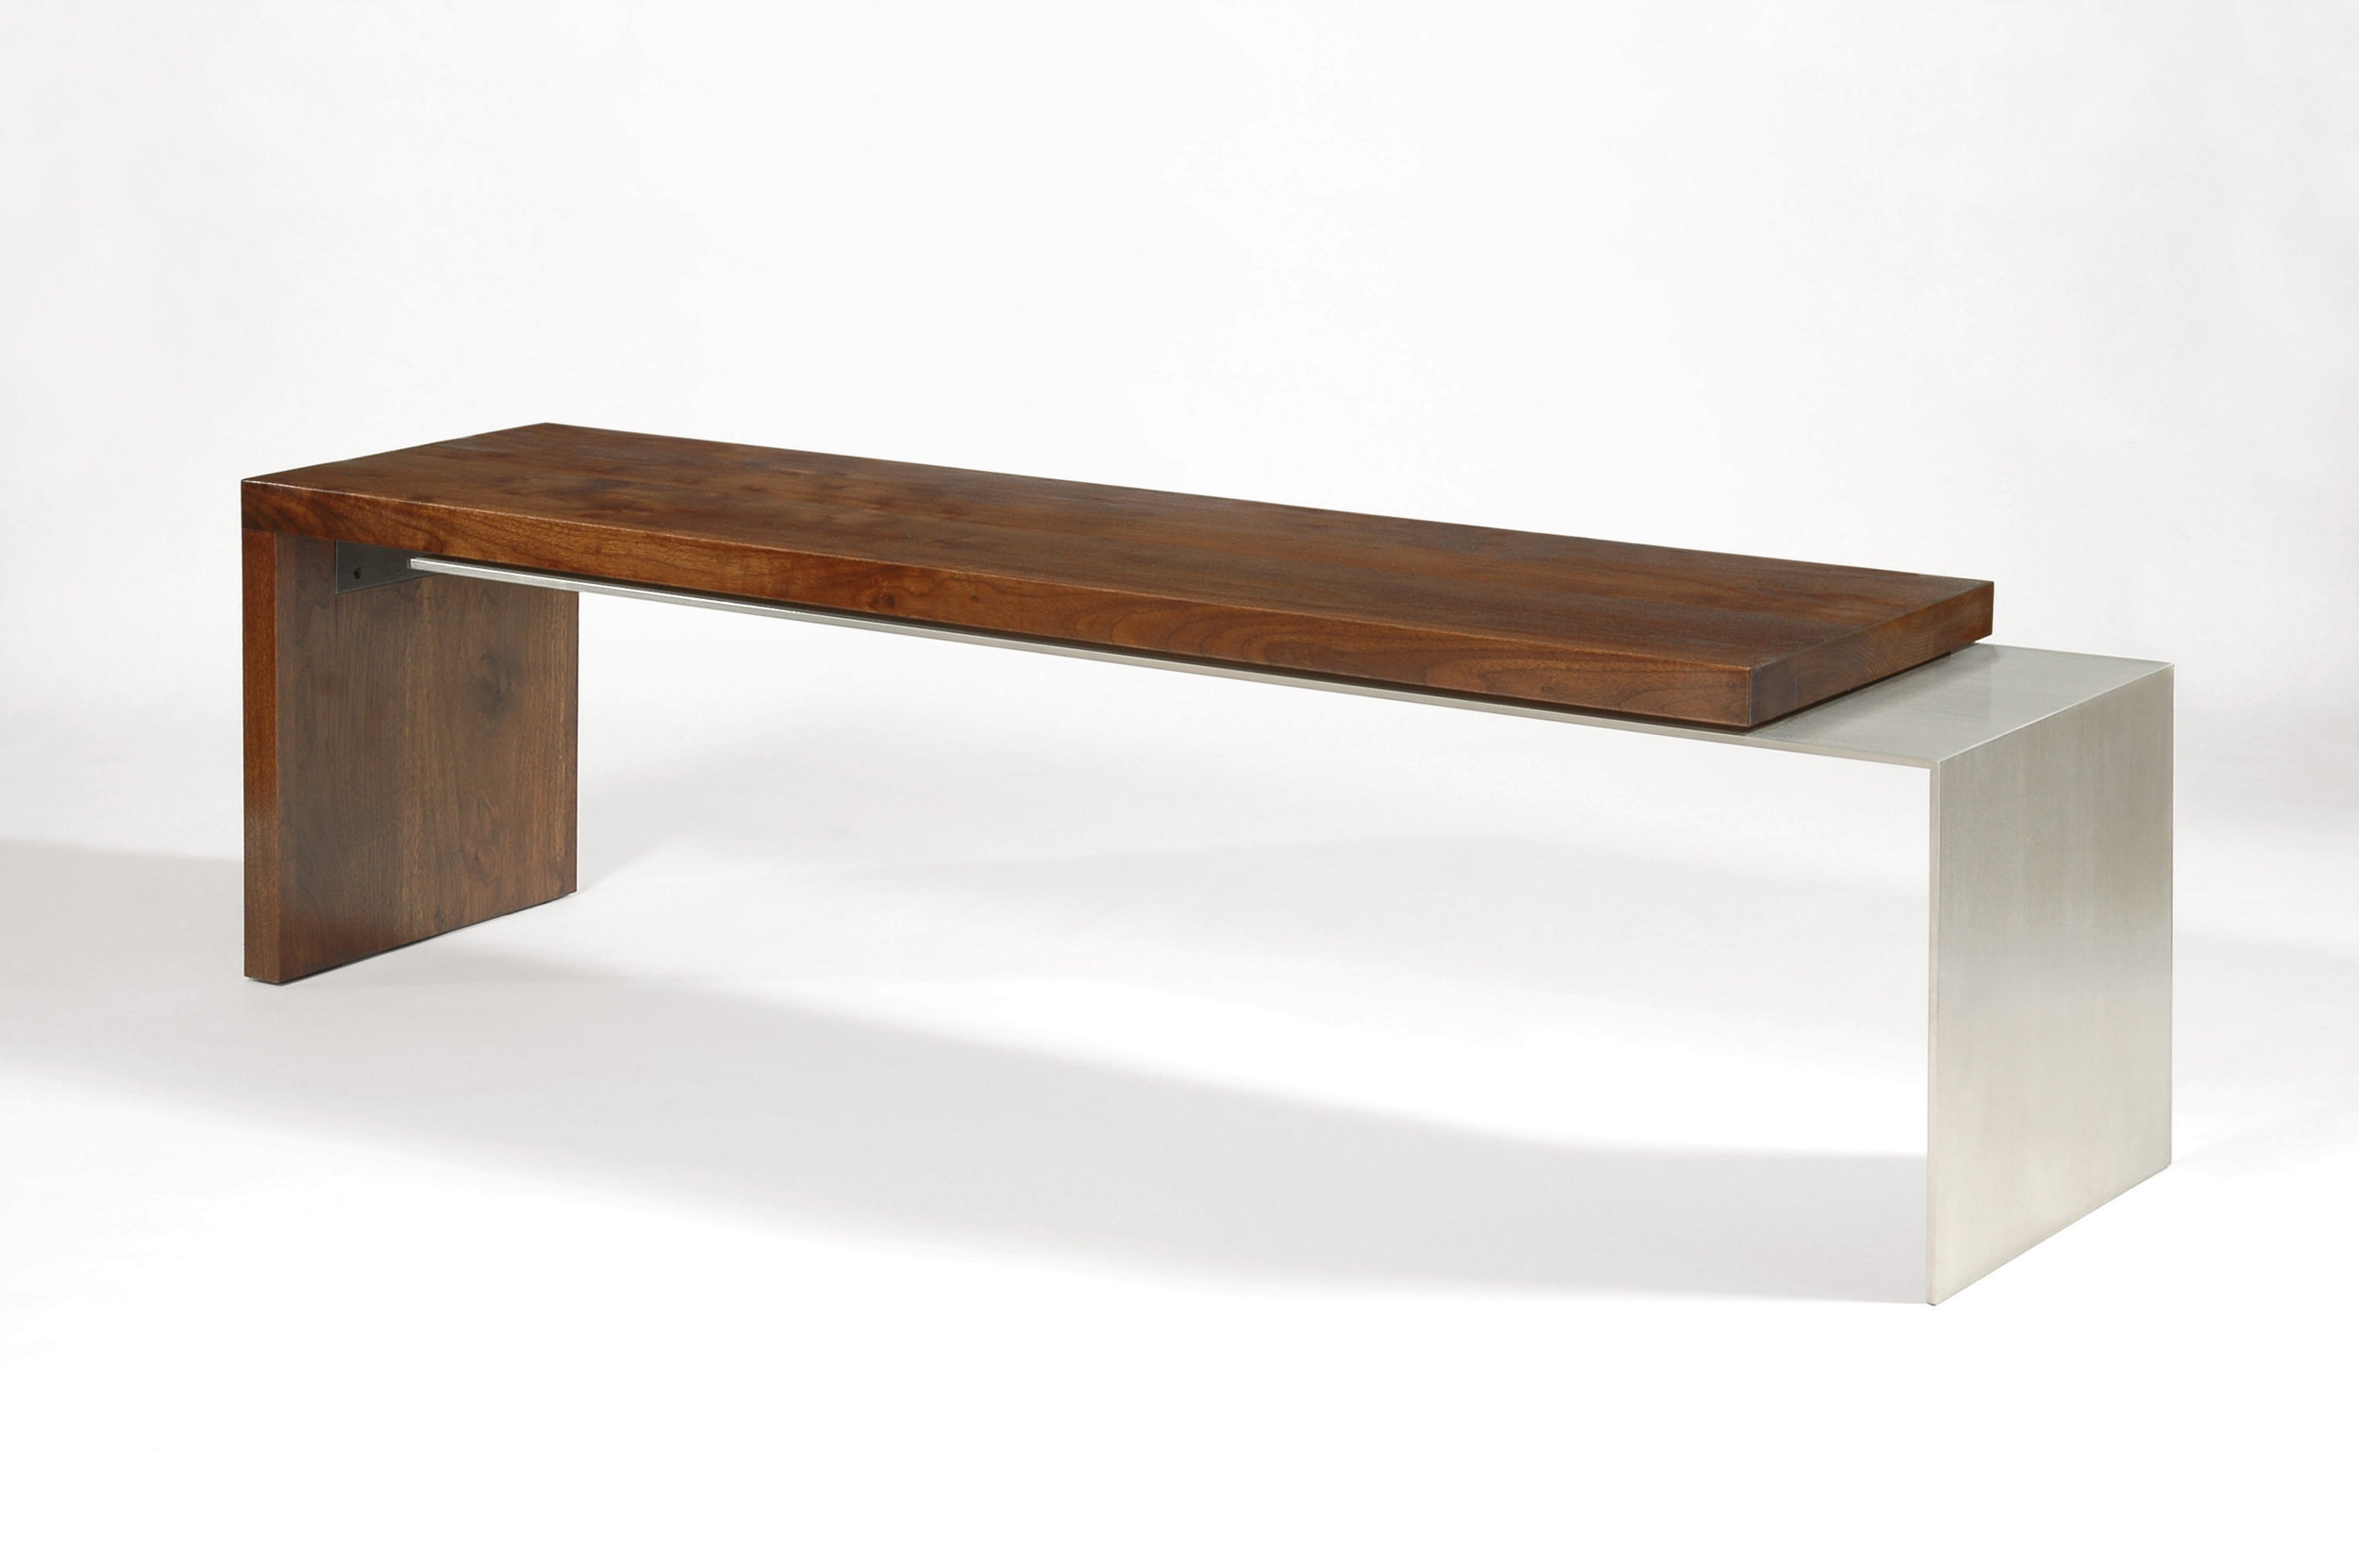 "Overlay Bench/Coffee table (60"" x 16"" x 16"" high)"